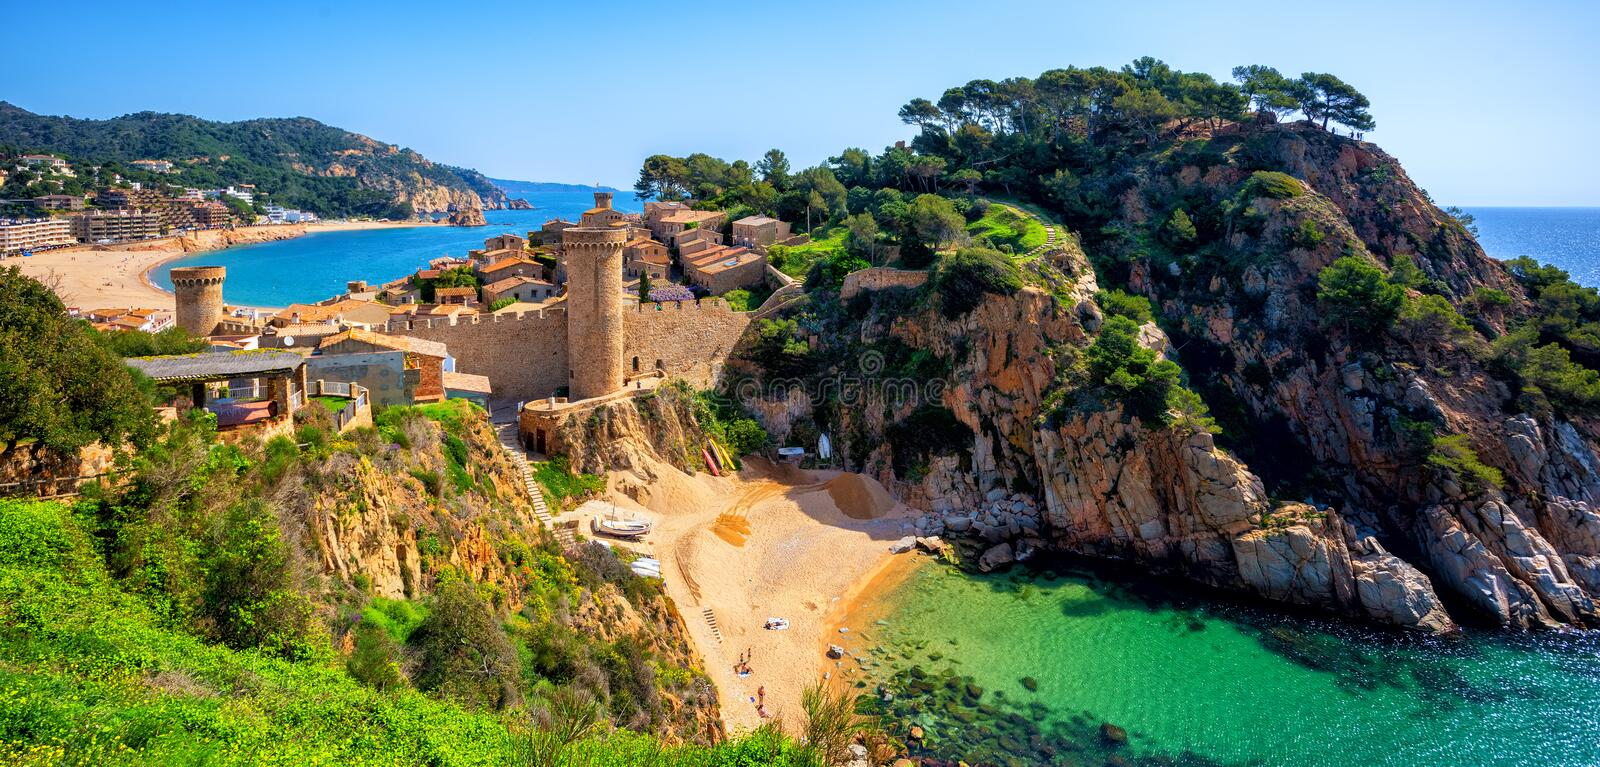 Tossa de Mar, sand beach and Old Town walls, Catalonia, Spain. Tossa de Mar, the historical Old Town walls and sand beach on Costa Brava mediterranean coast stock photography